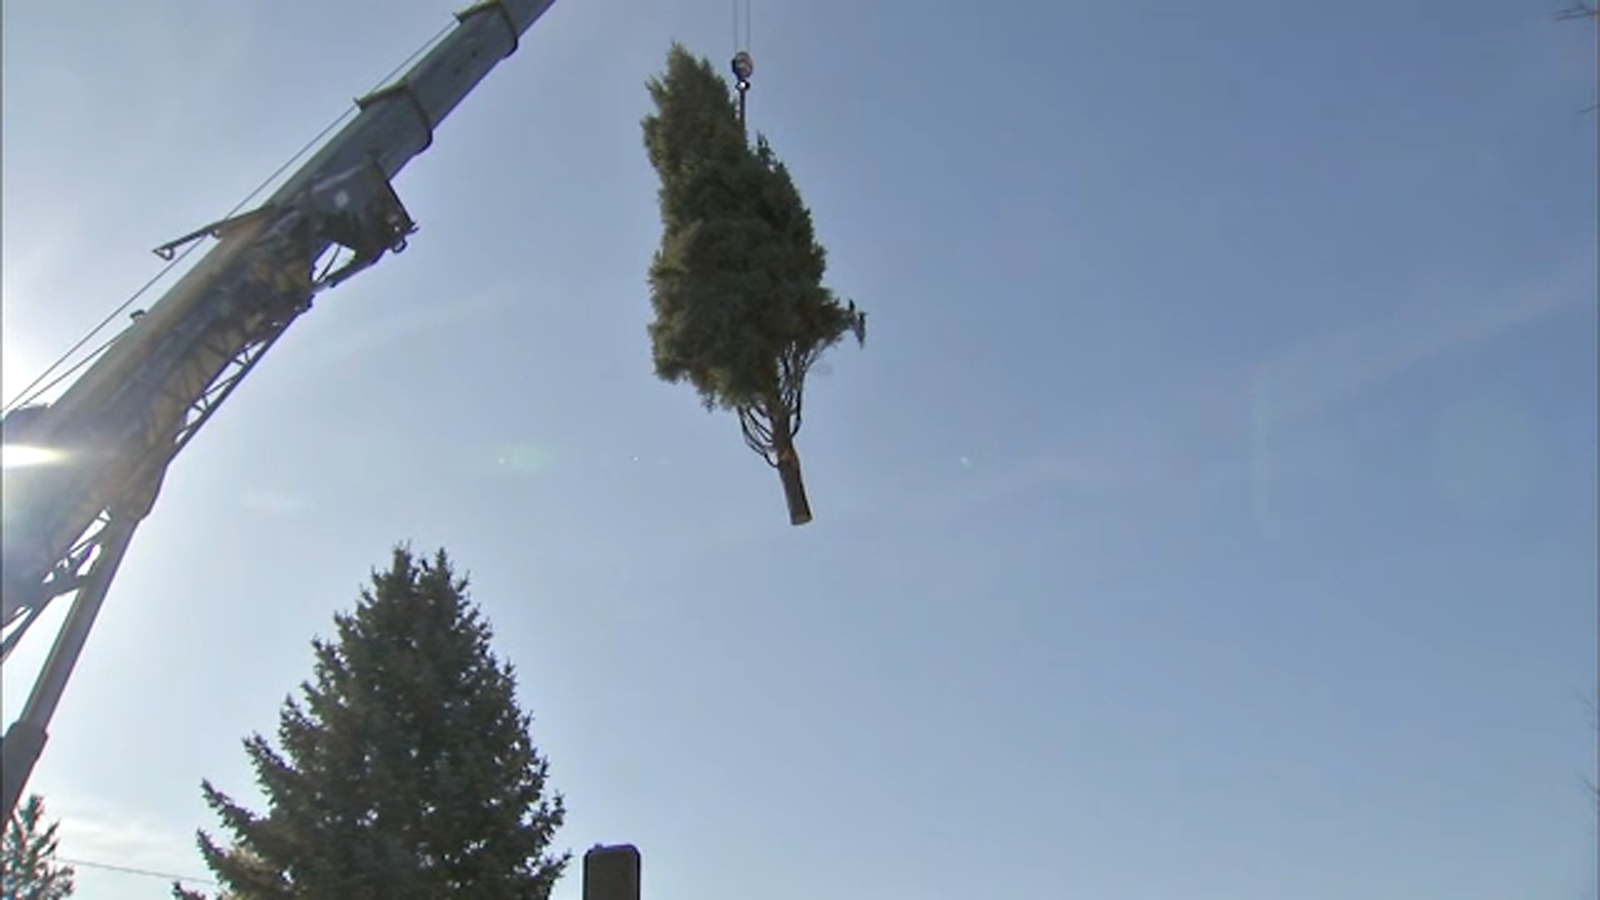 2021 Chicago Christmas Tree Chicago 2020 Christmas Tree Lighting Ceremony In Millennium Park To Take Place Virtually On City S Youtube Page Abc7 Chicago